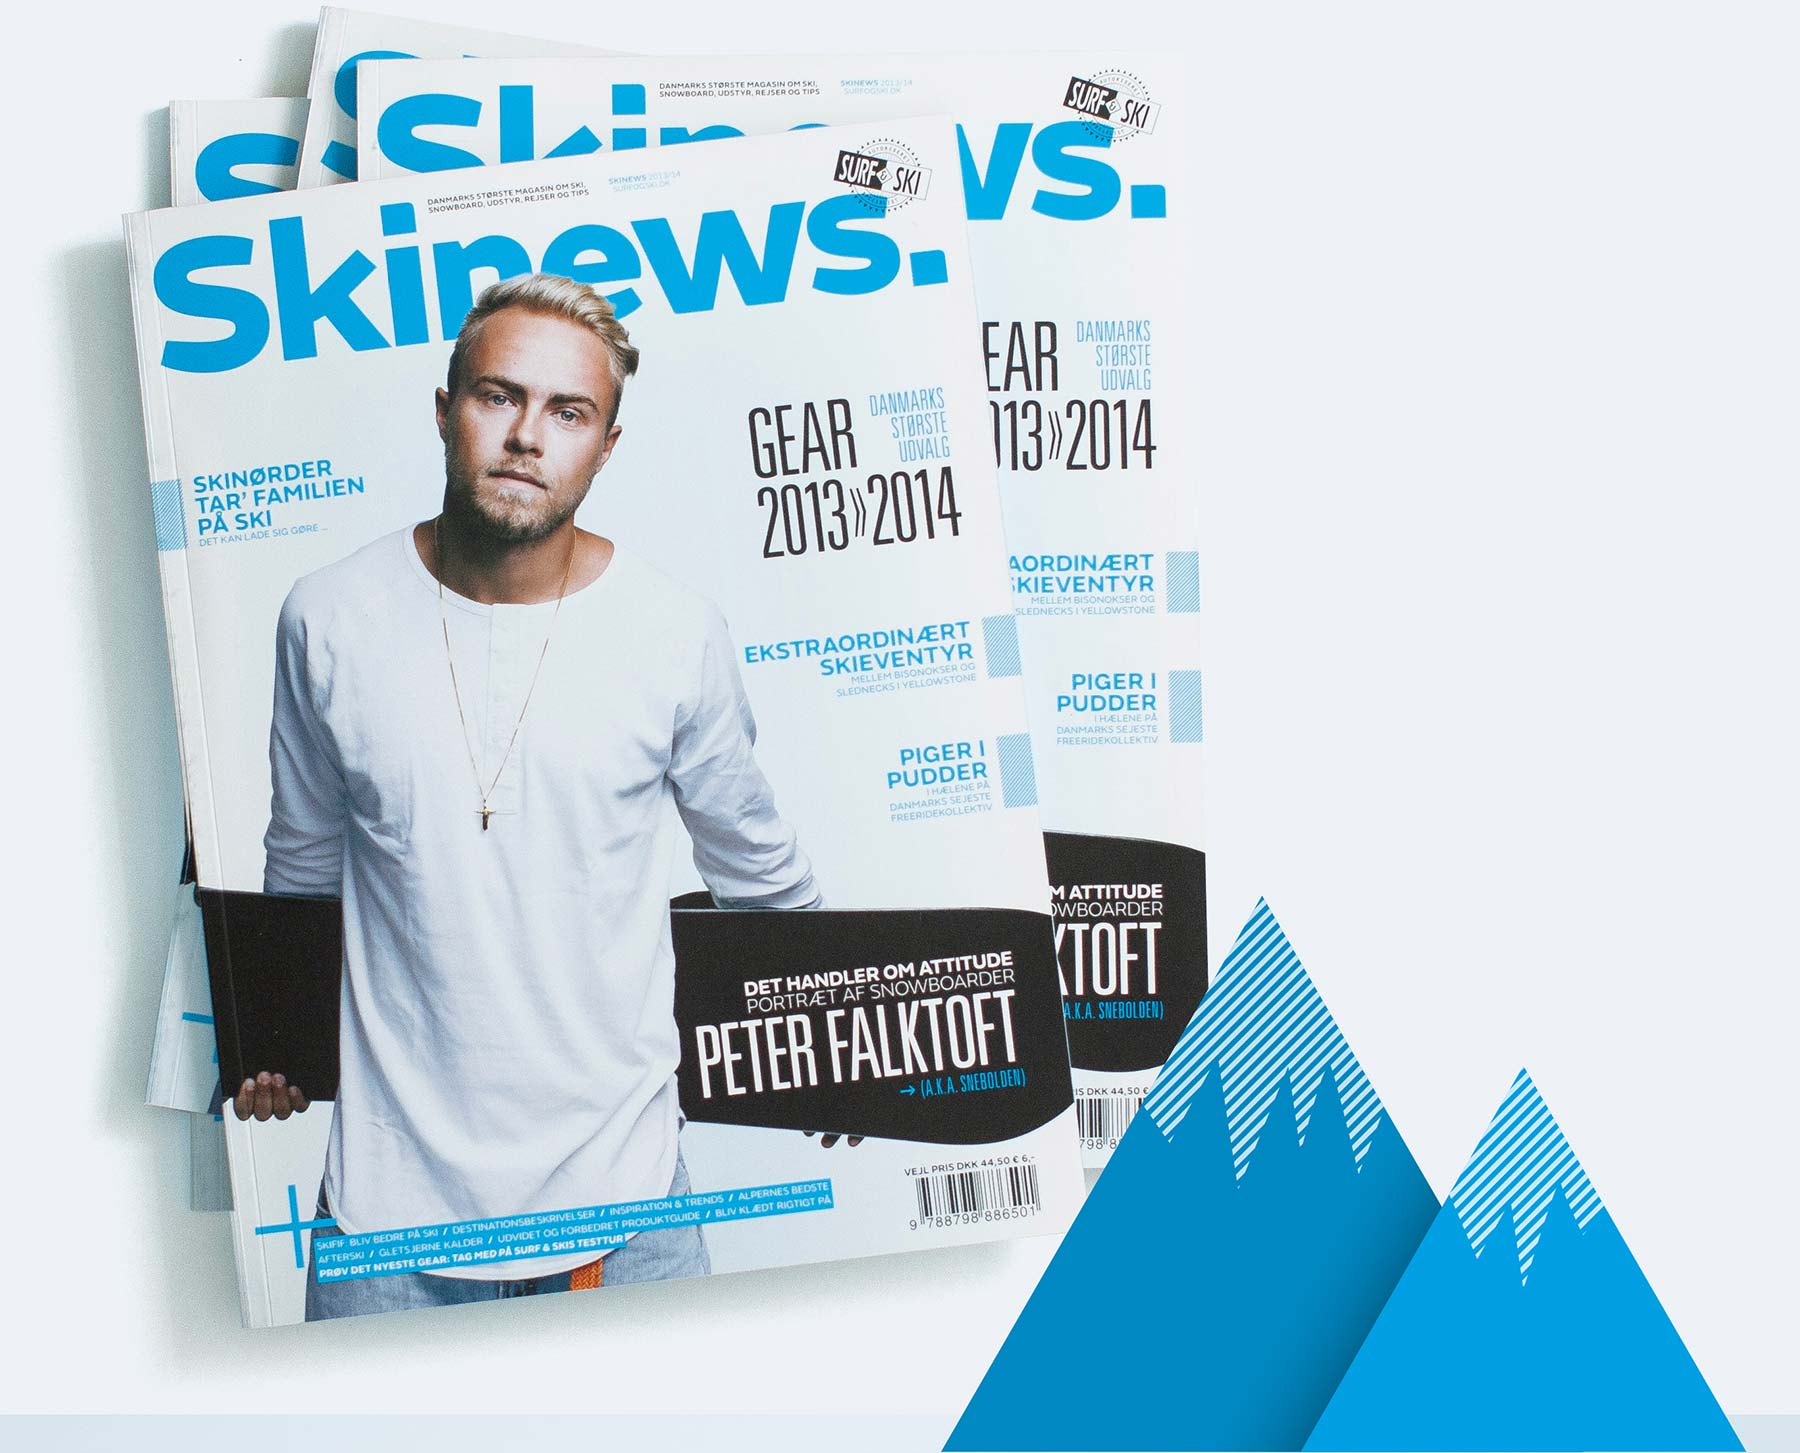 Nyt design til magasinet Ski News for Surf og Ski, med artikel om Peter Falktorft